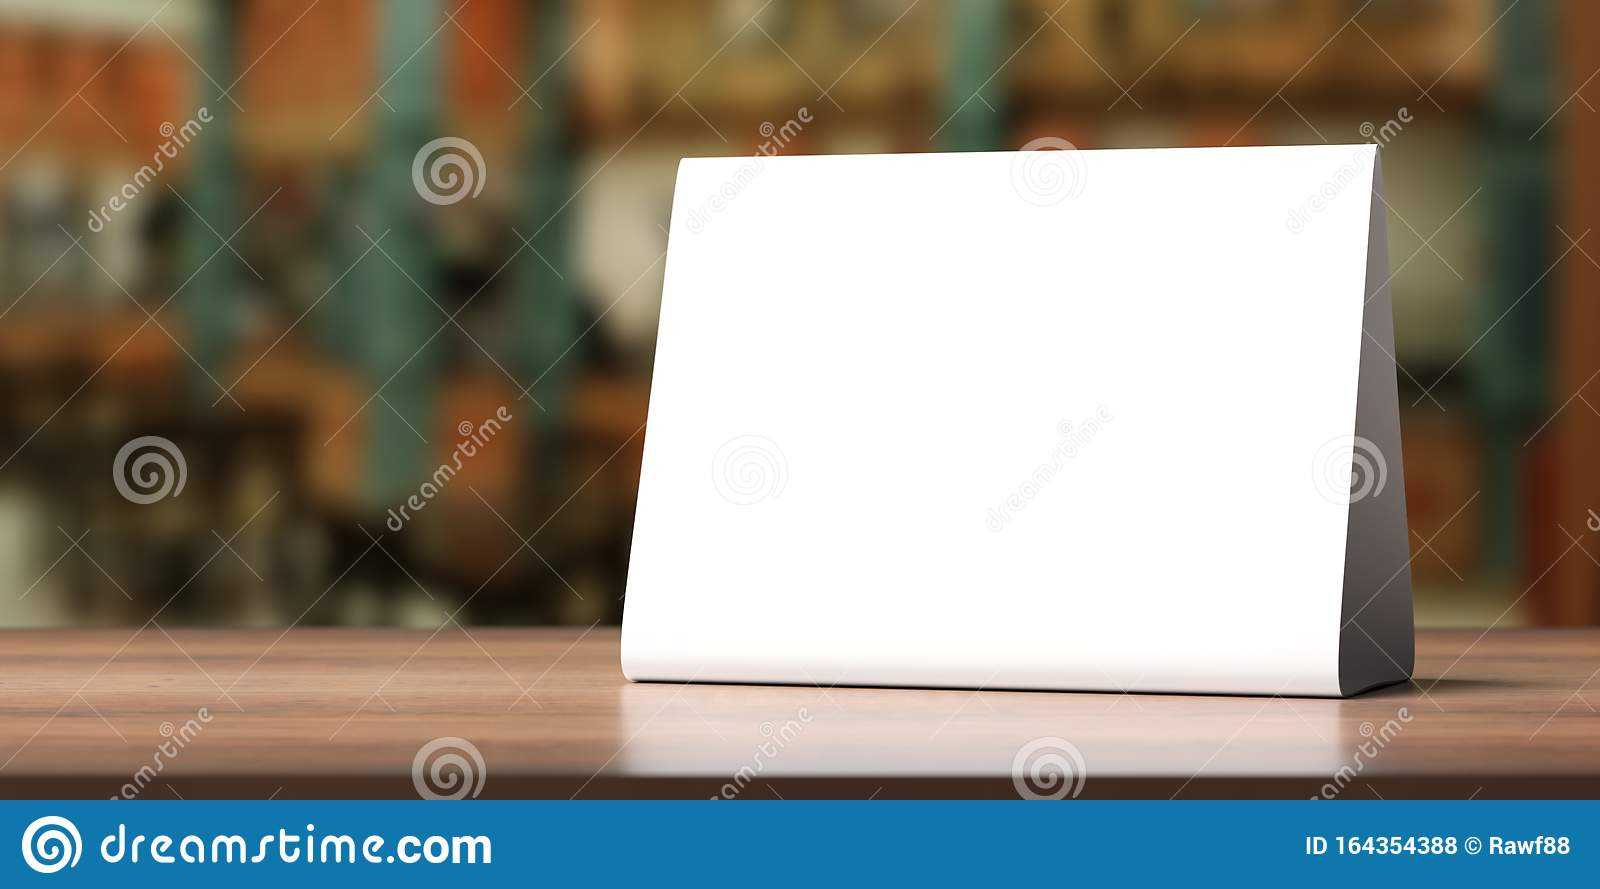 Table Tent, Reserved Card Sign Empty Blank On A Wooden Table For Table Reservation Card Template